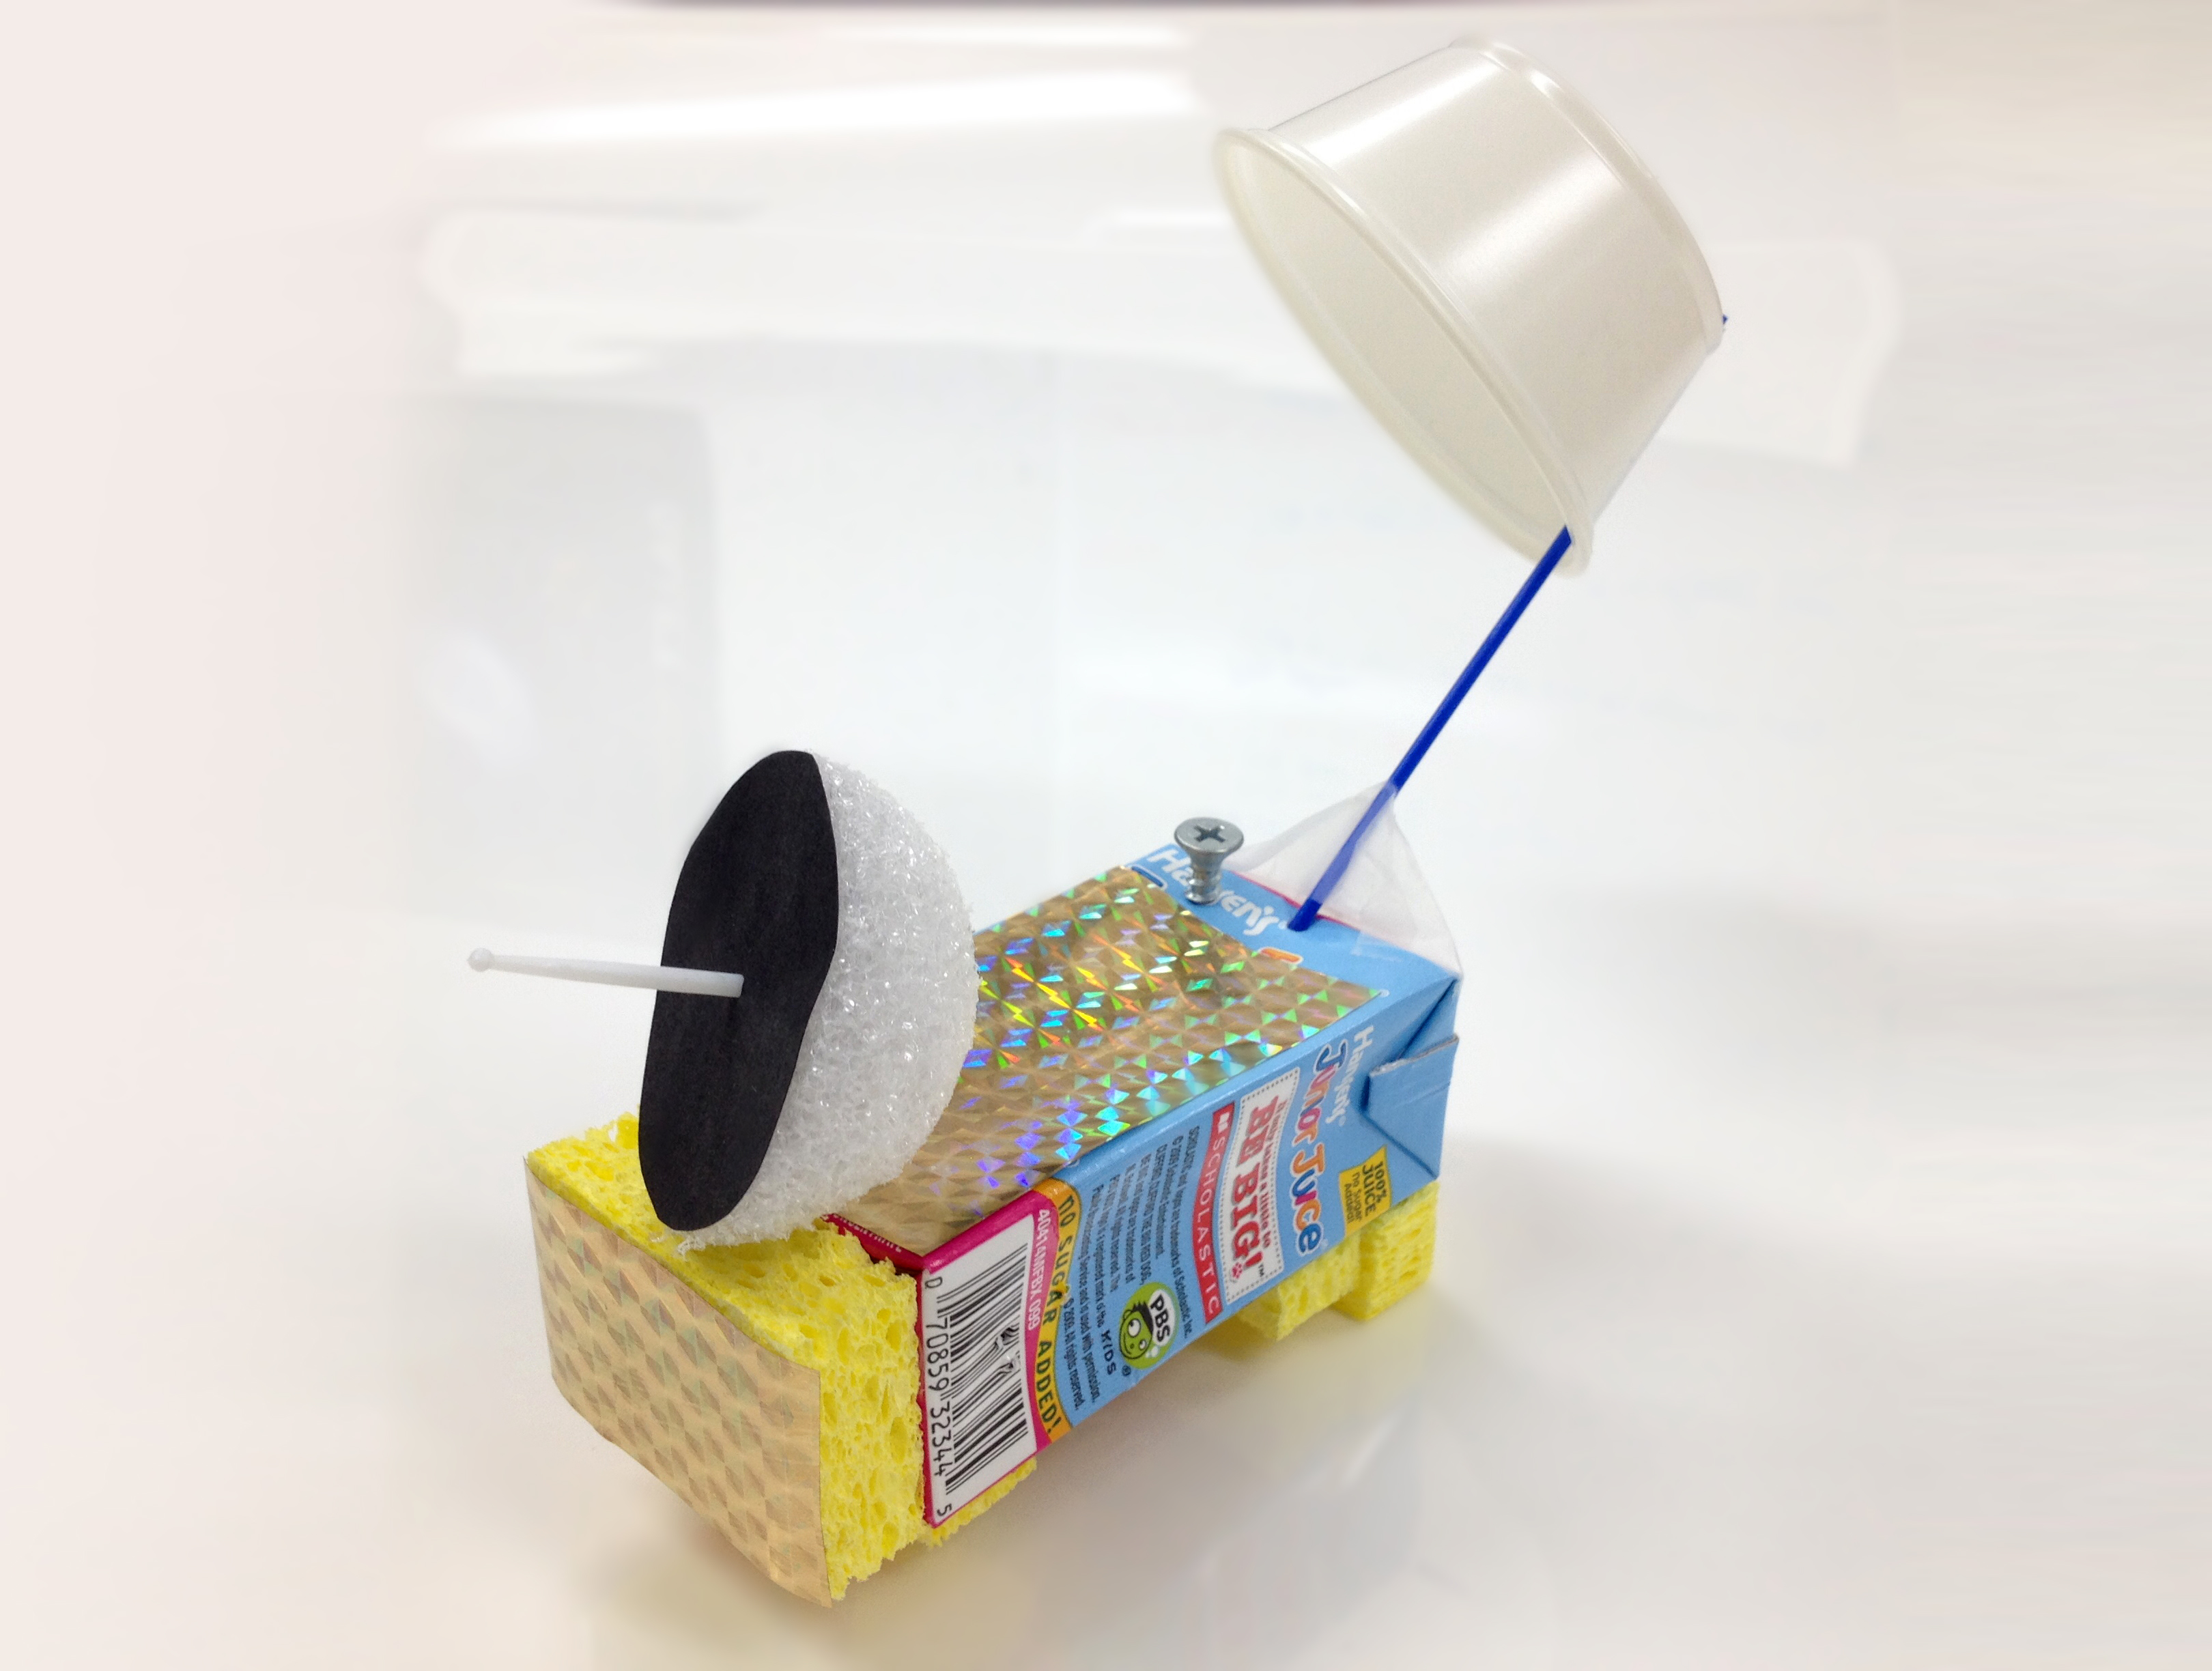 a model satellite built with described supplies.